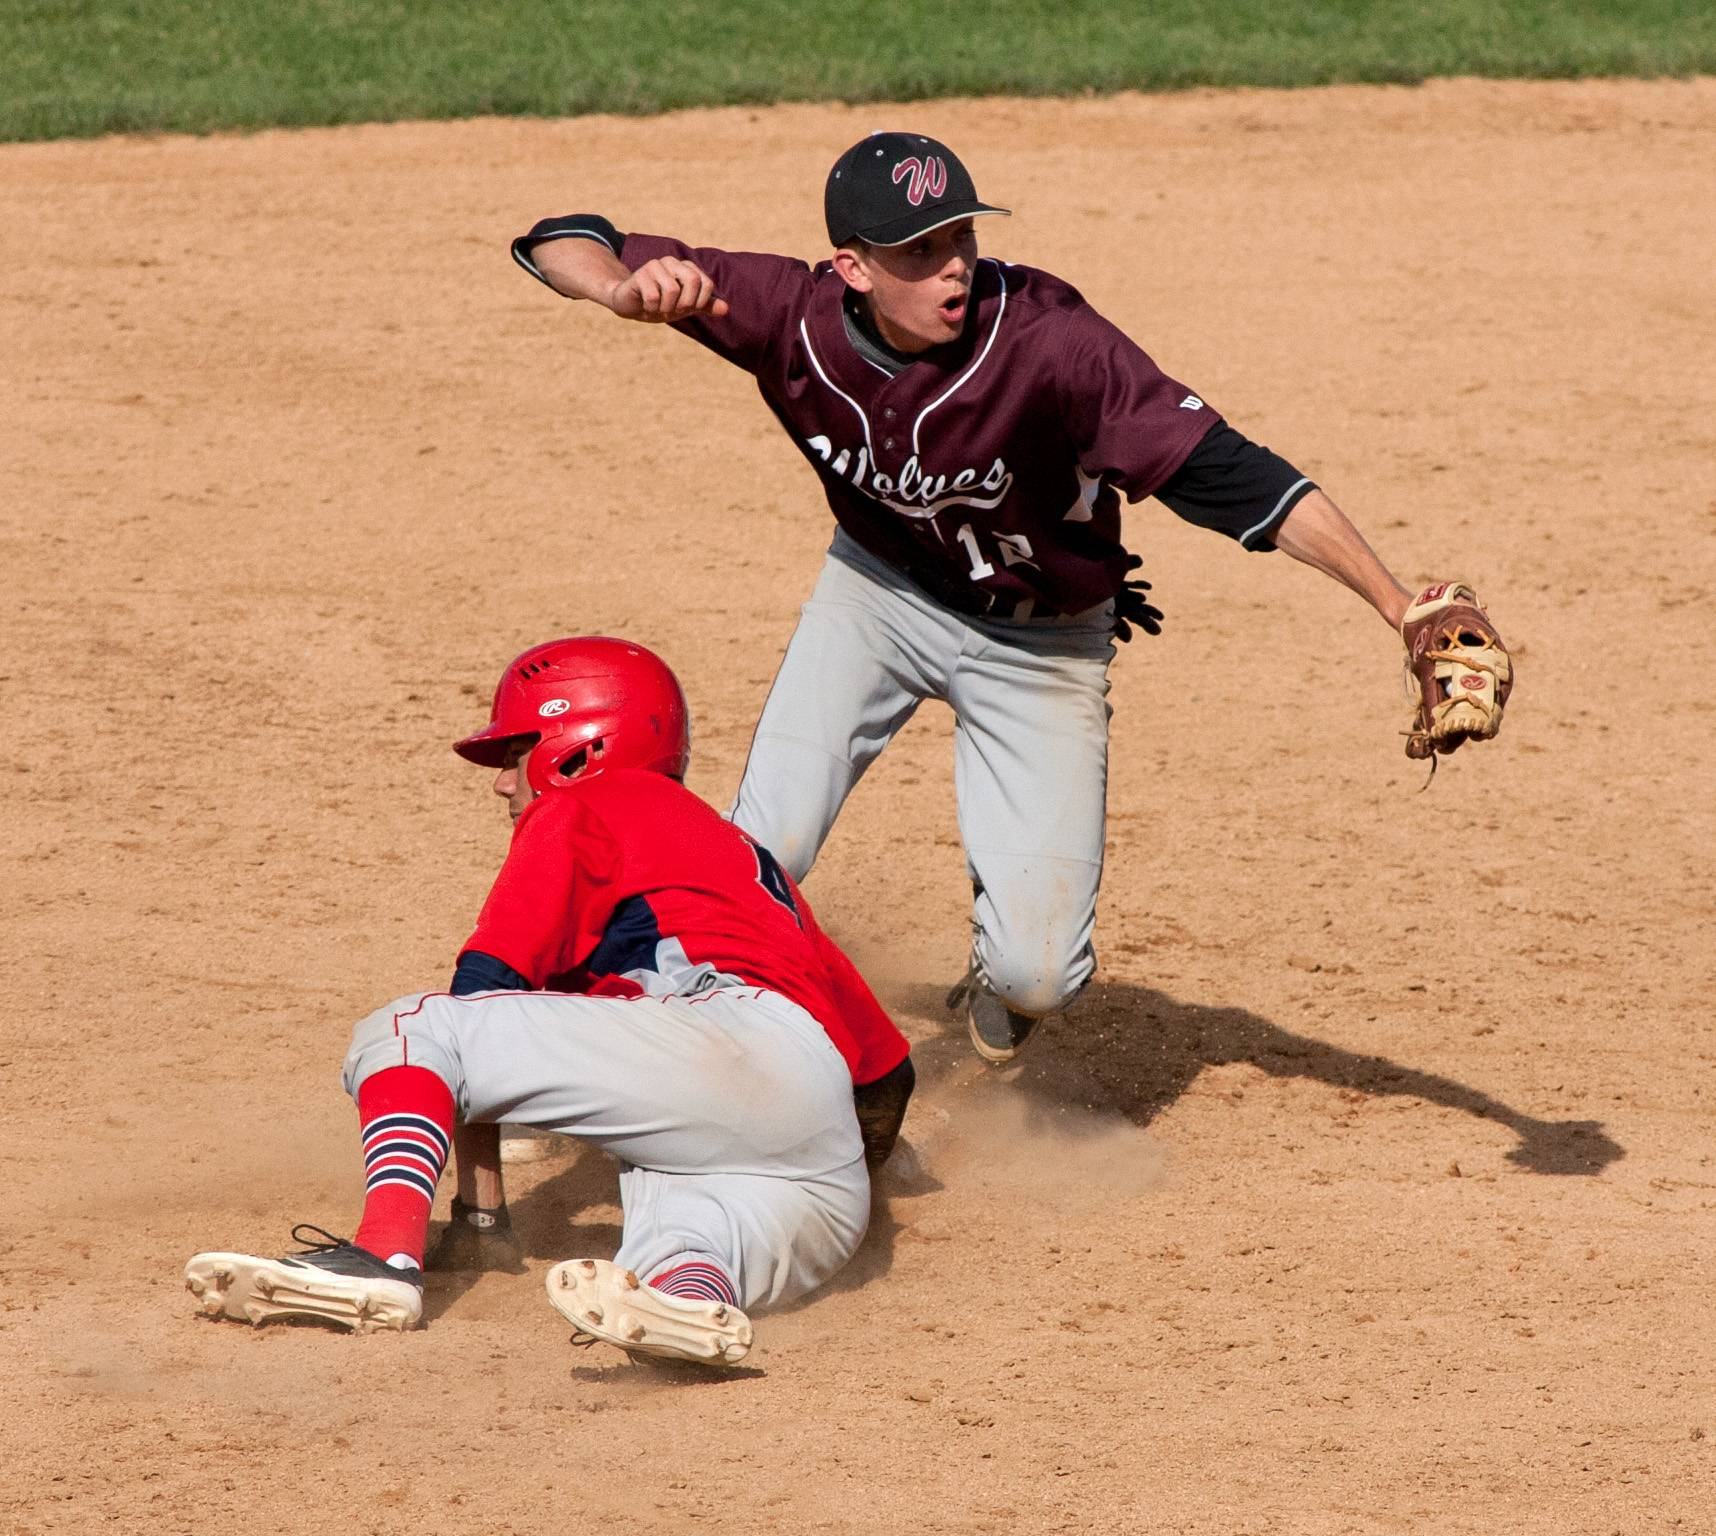 South Elgin's Dane Toppel gets picked off second base in the sixth inning against Prairie Ridge during the Class 4A third-place game at Silver Cross Field in Joliet.